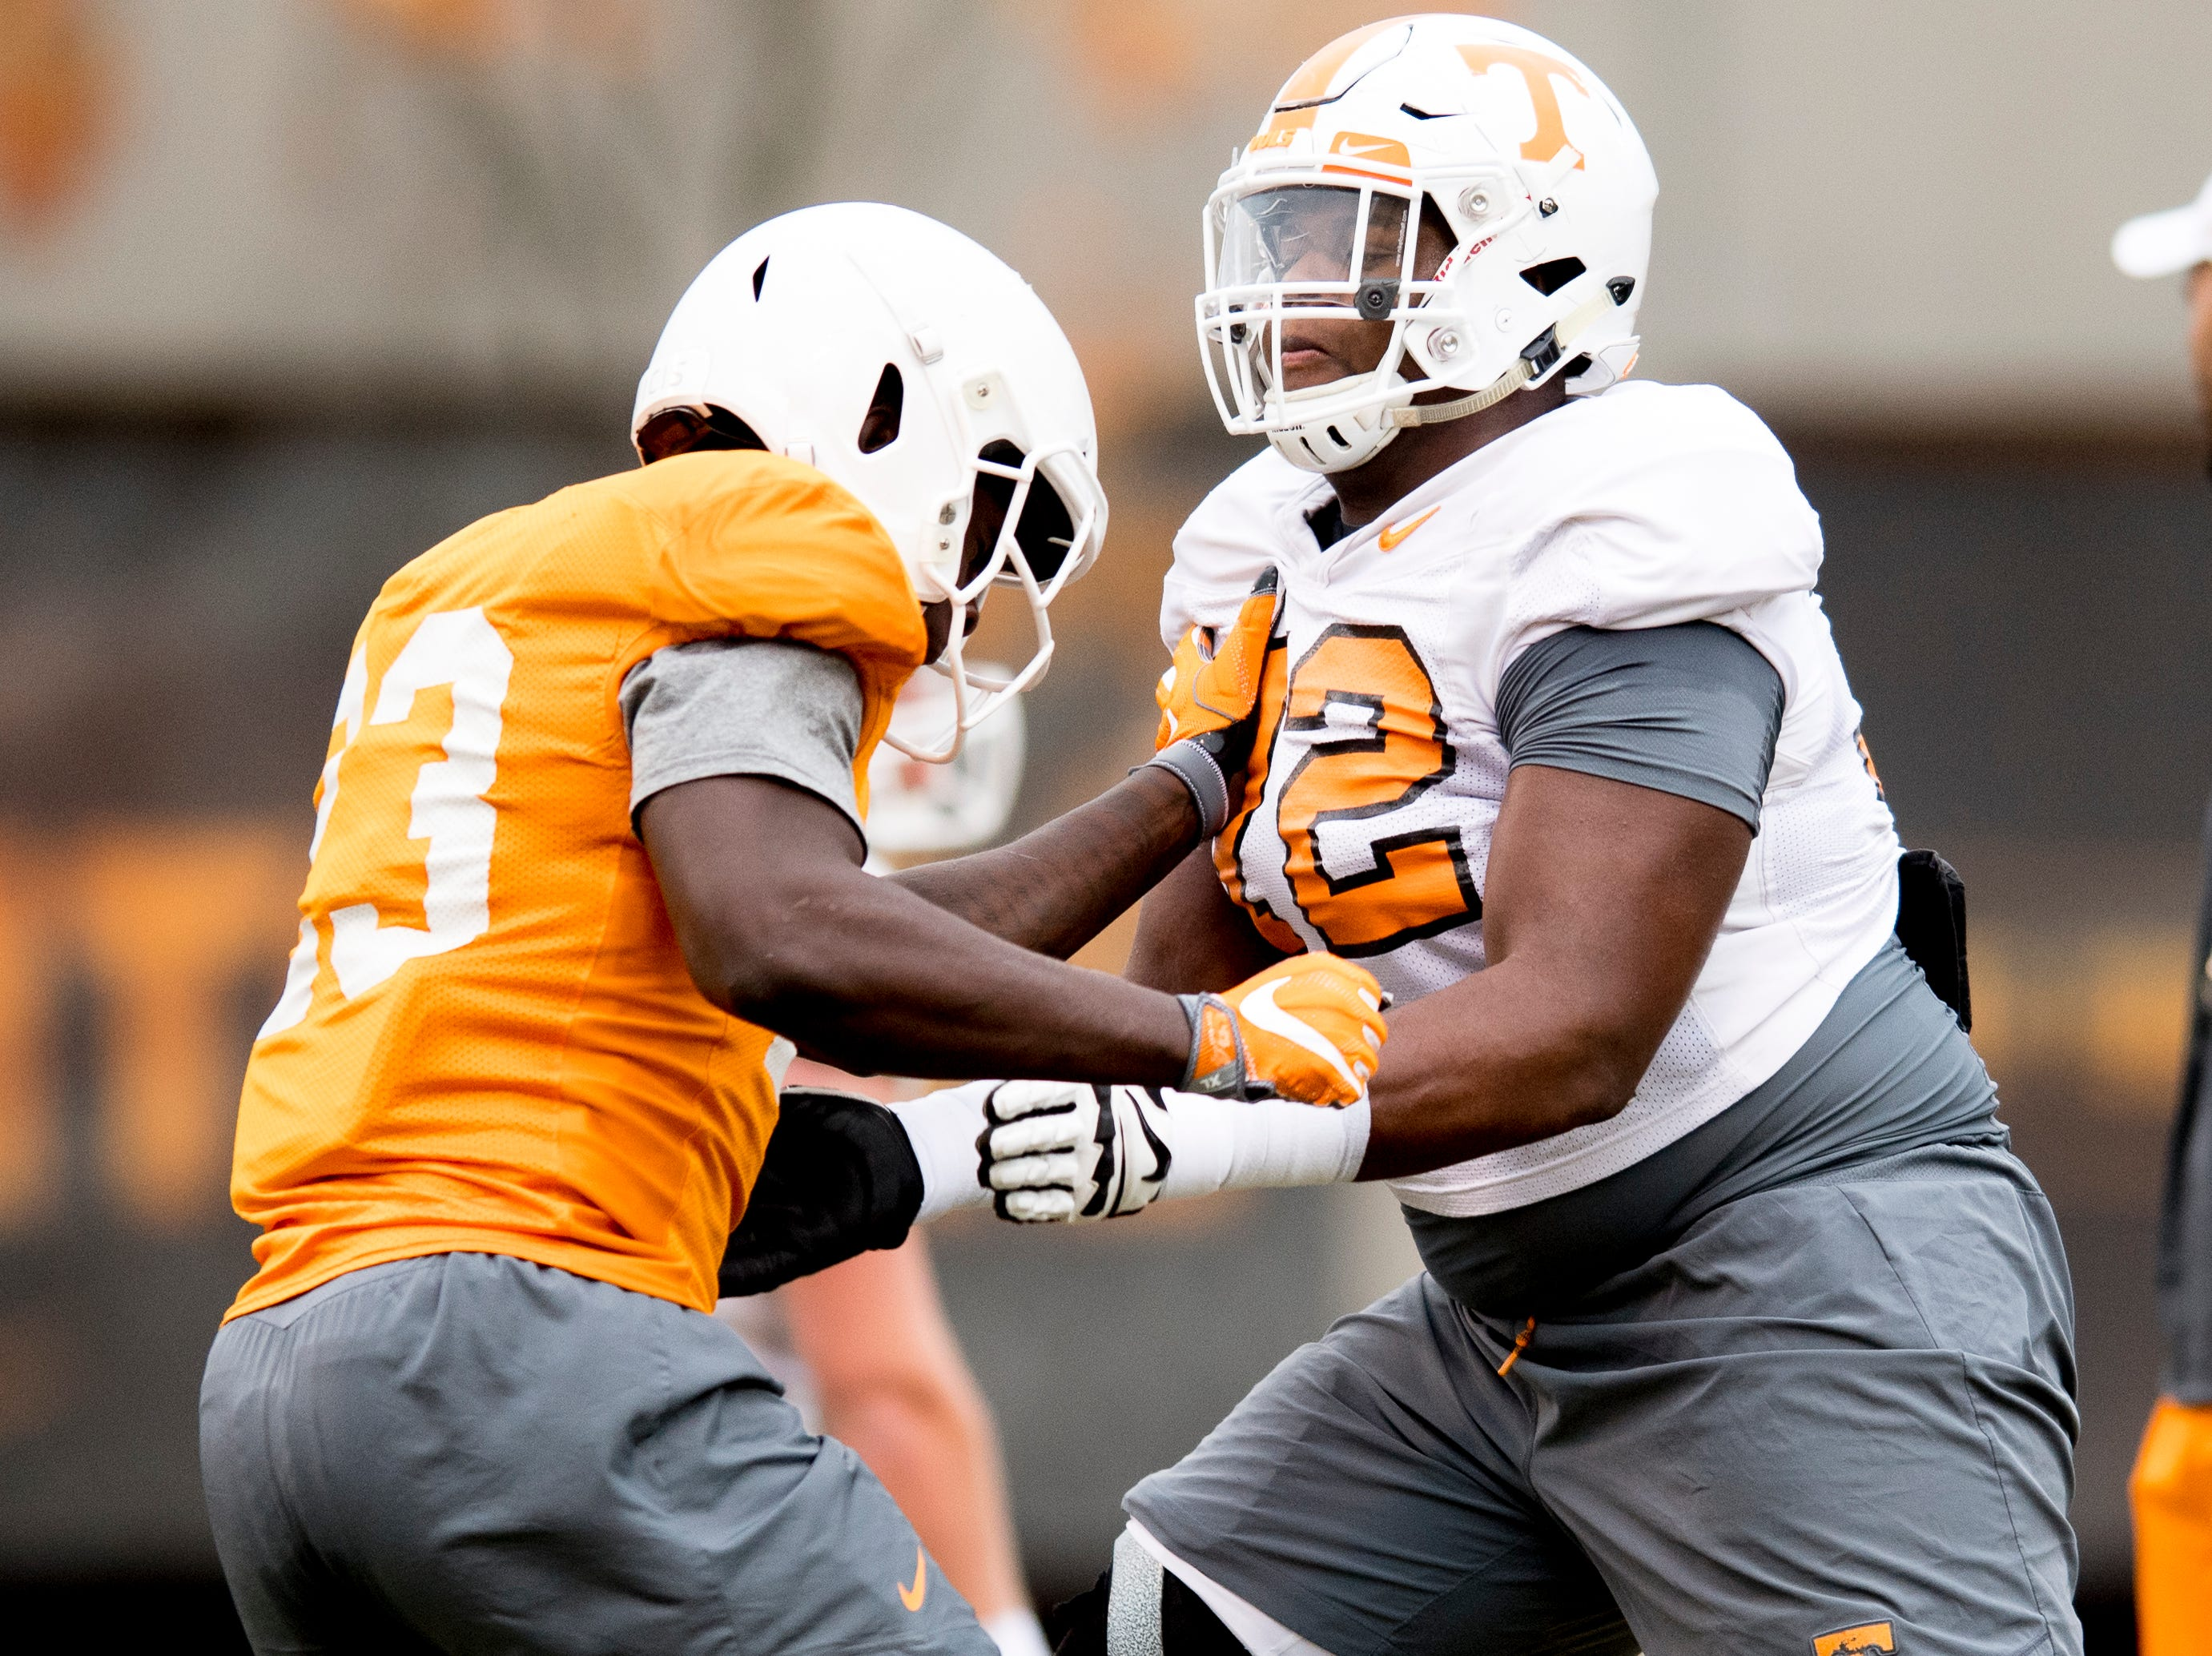 Tennessee linebacker Will Ignont (23) and another player drill during Tennessee fall football practice at Haslam Field in Knoxville, Tennessee on Wednesday, November 7, 2018.